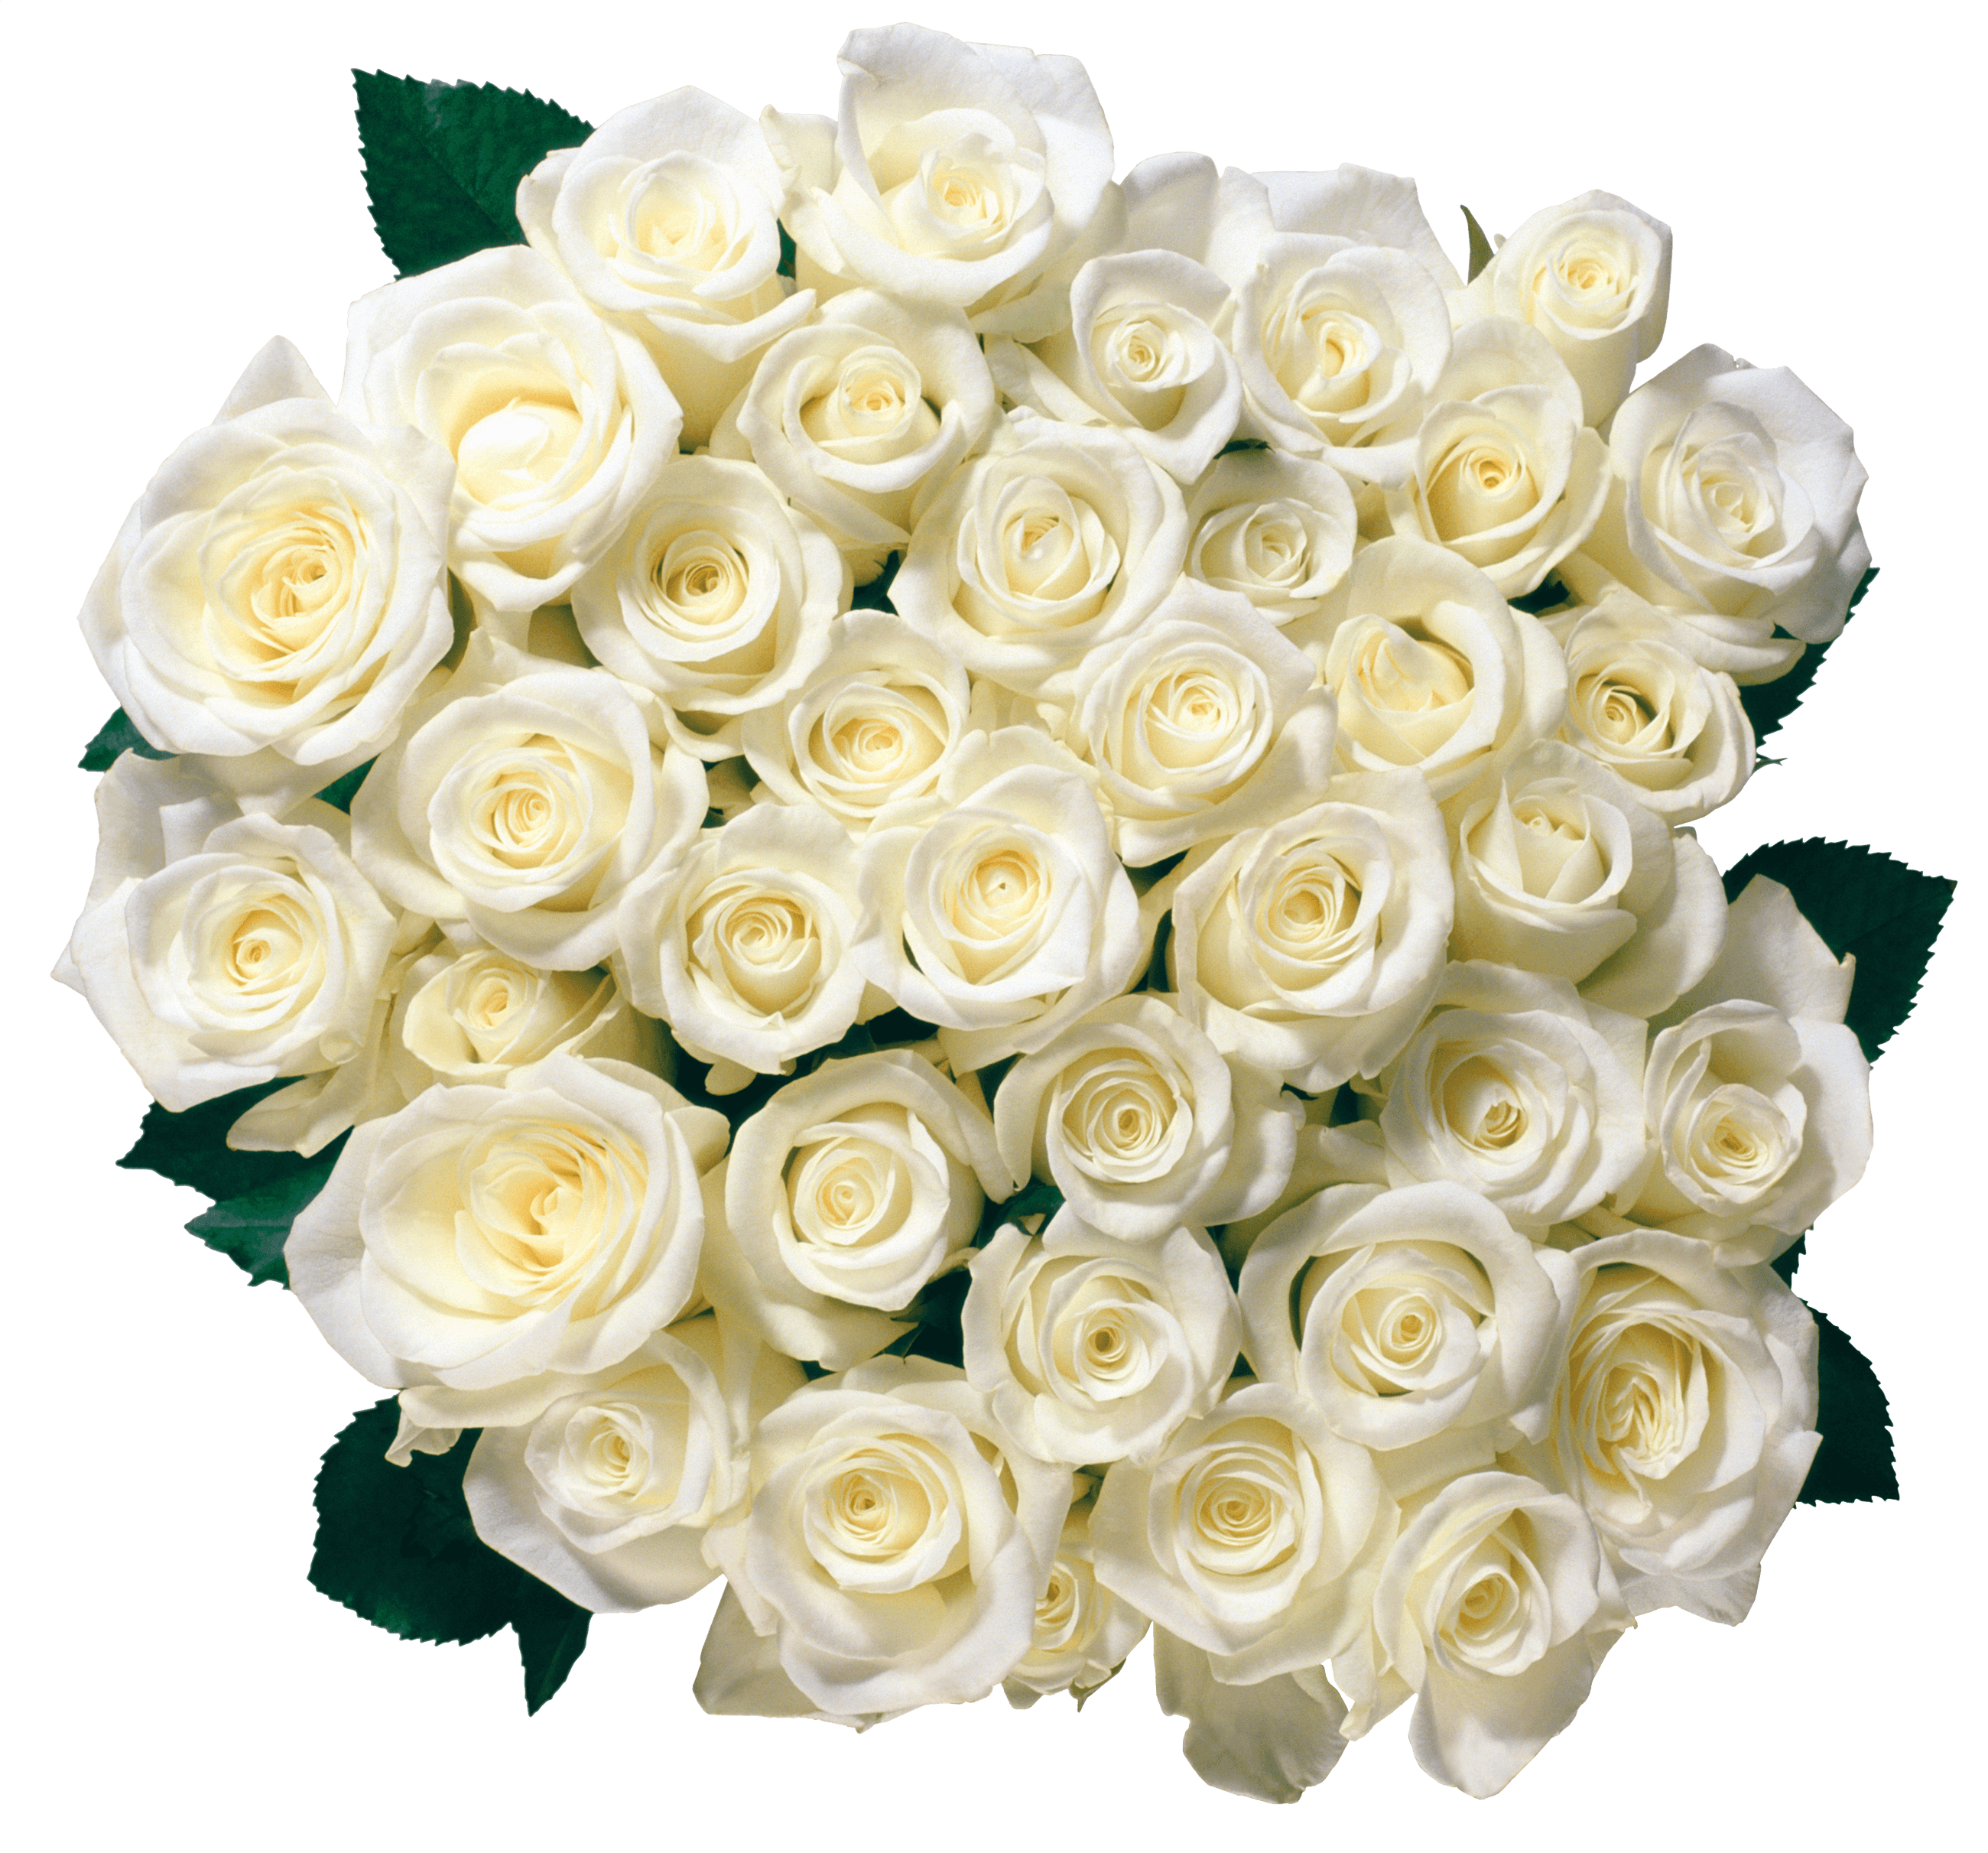 Bouquet Of White Roses transparent PNG.